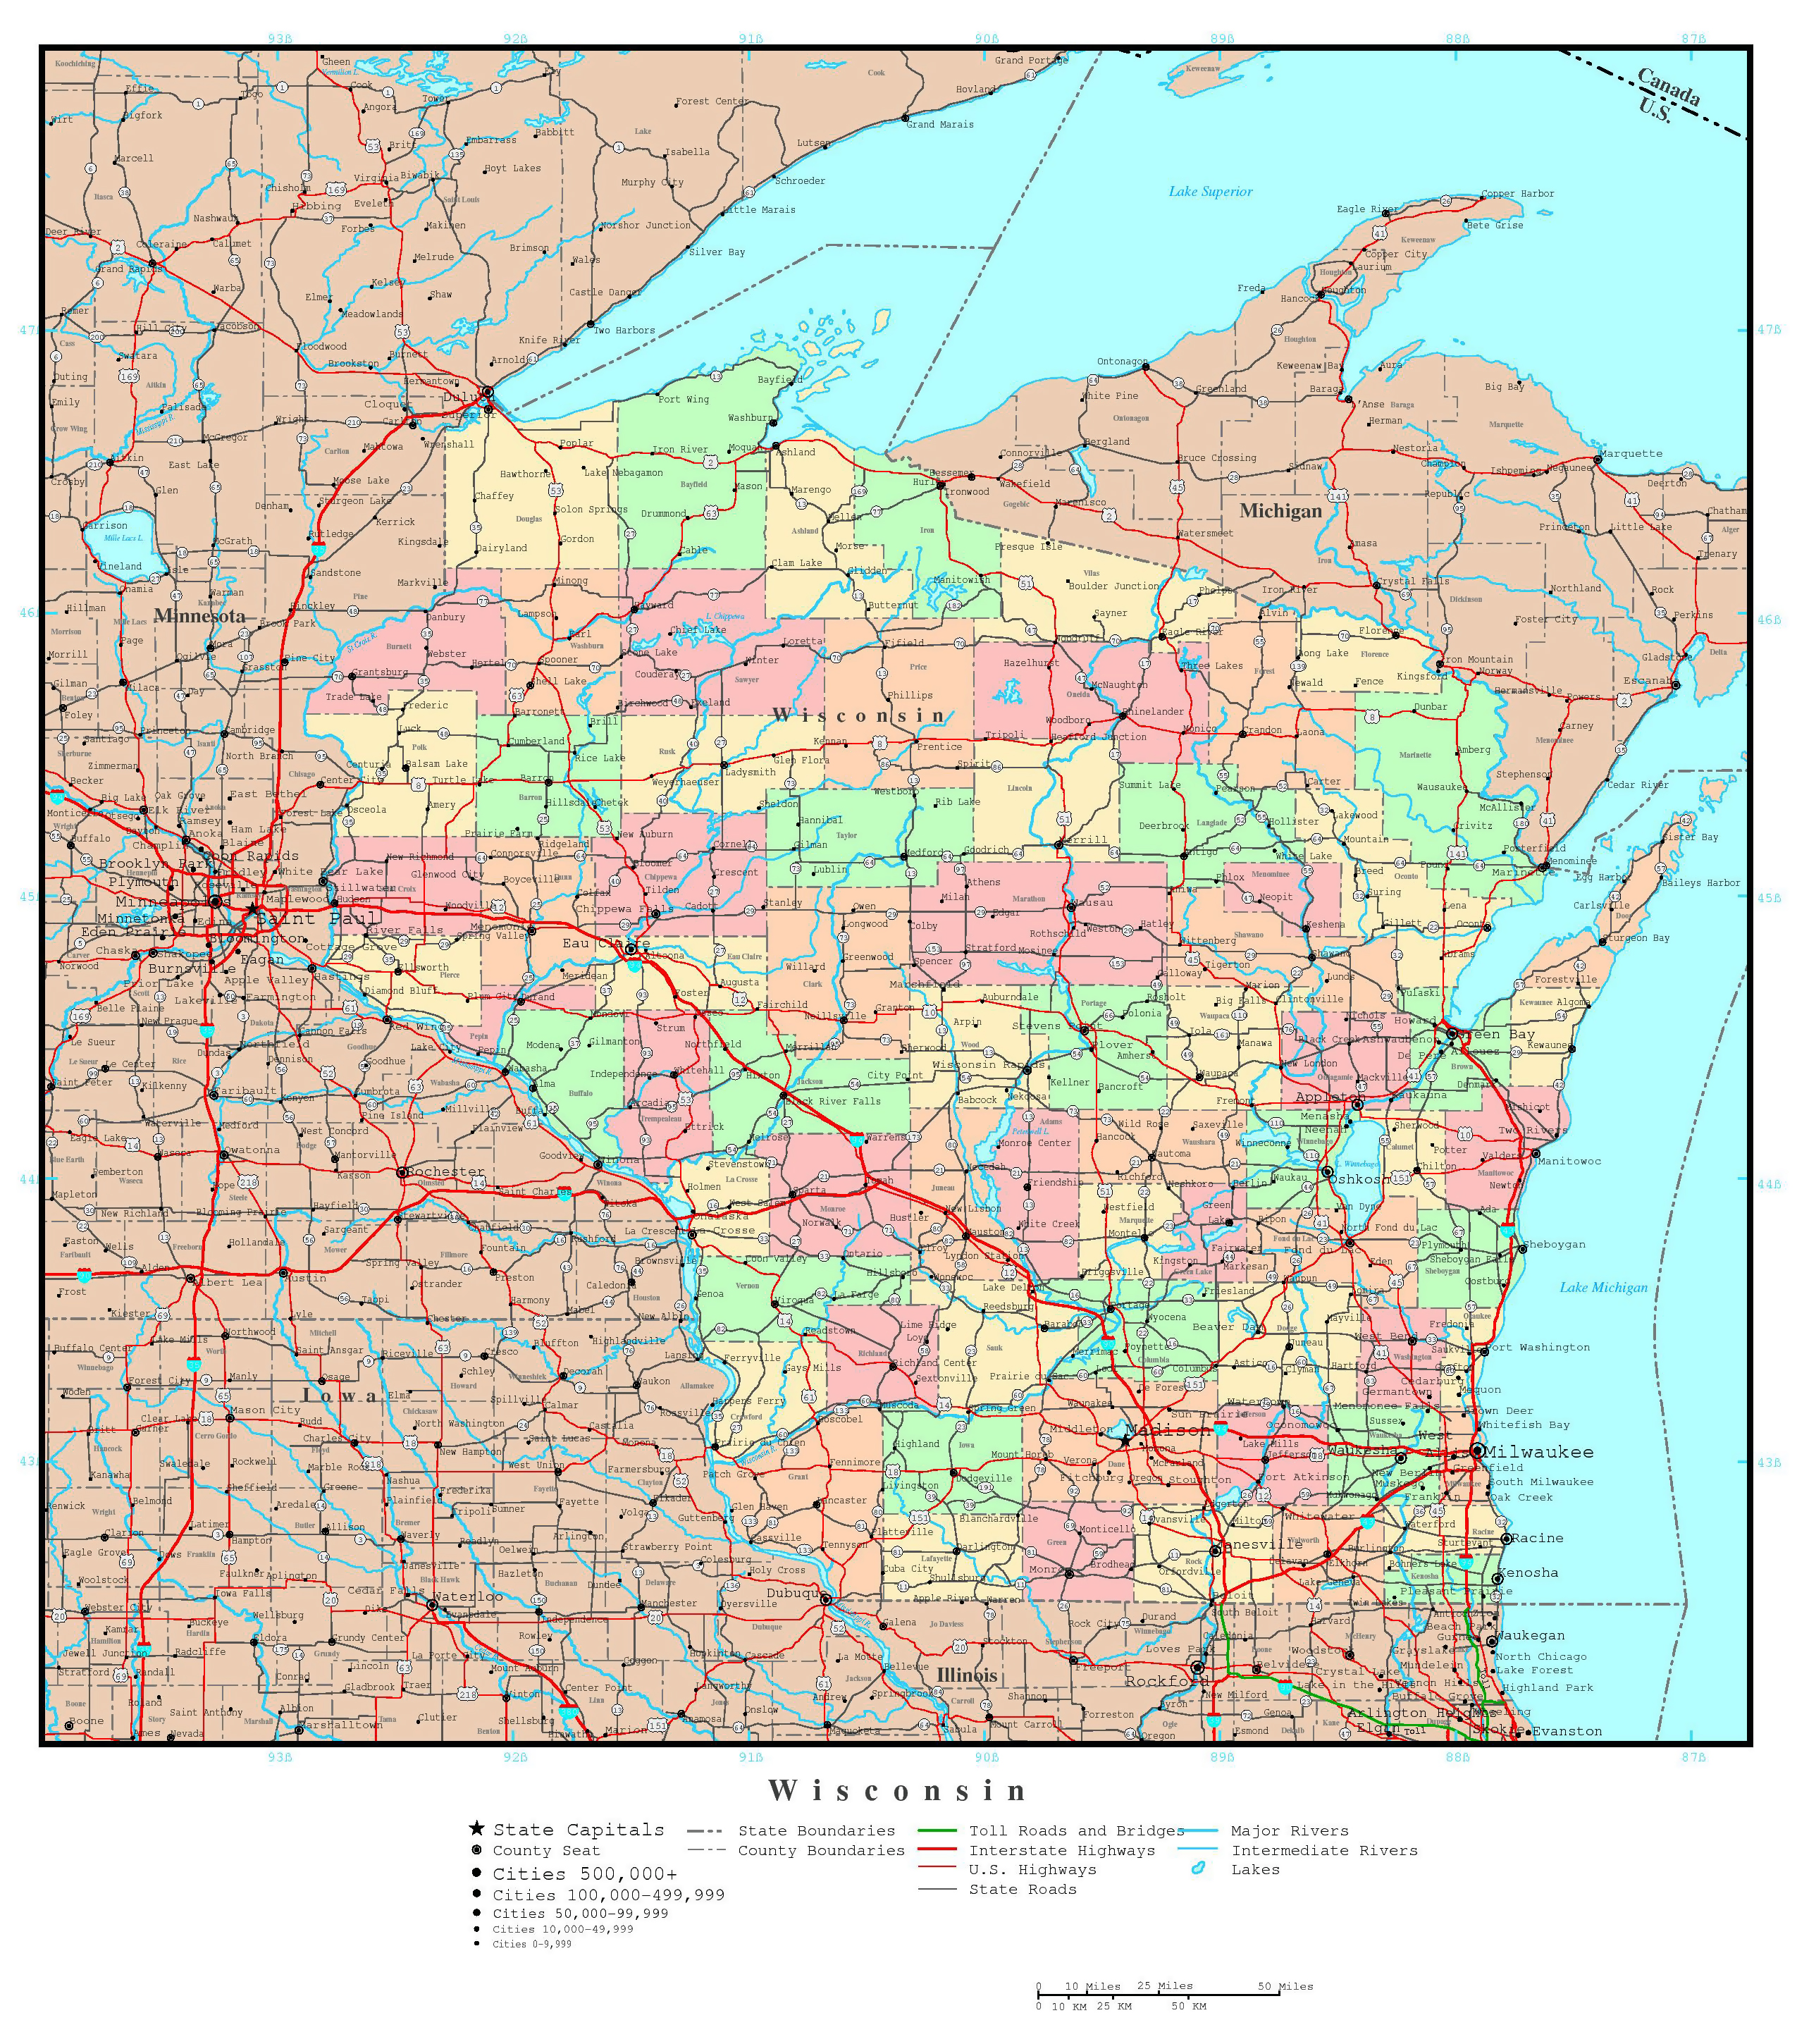 Large Detailed Administrative Map Of Wisconsin State With Roads - Map of wisconsin with cities